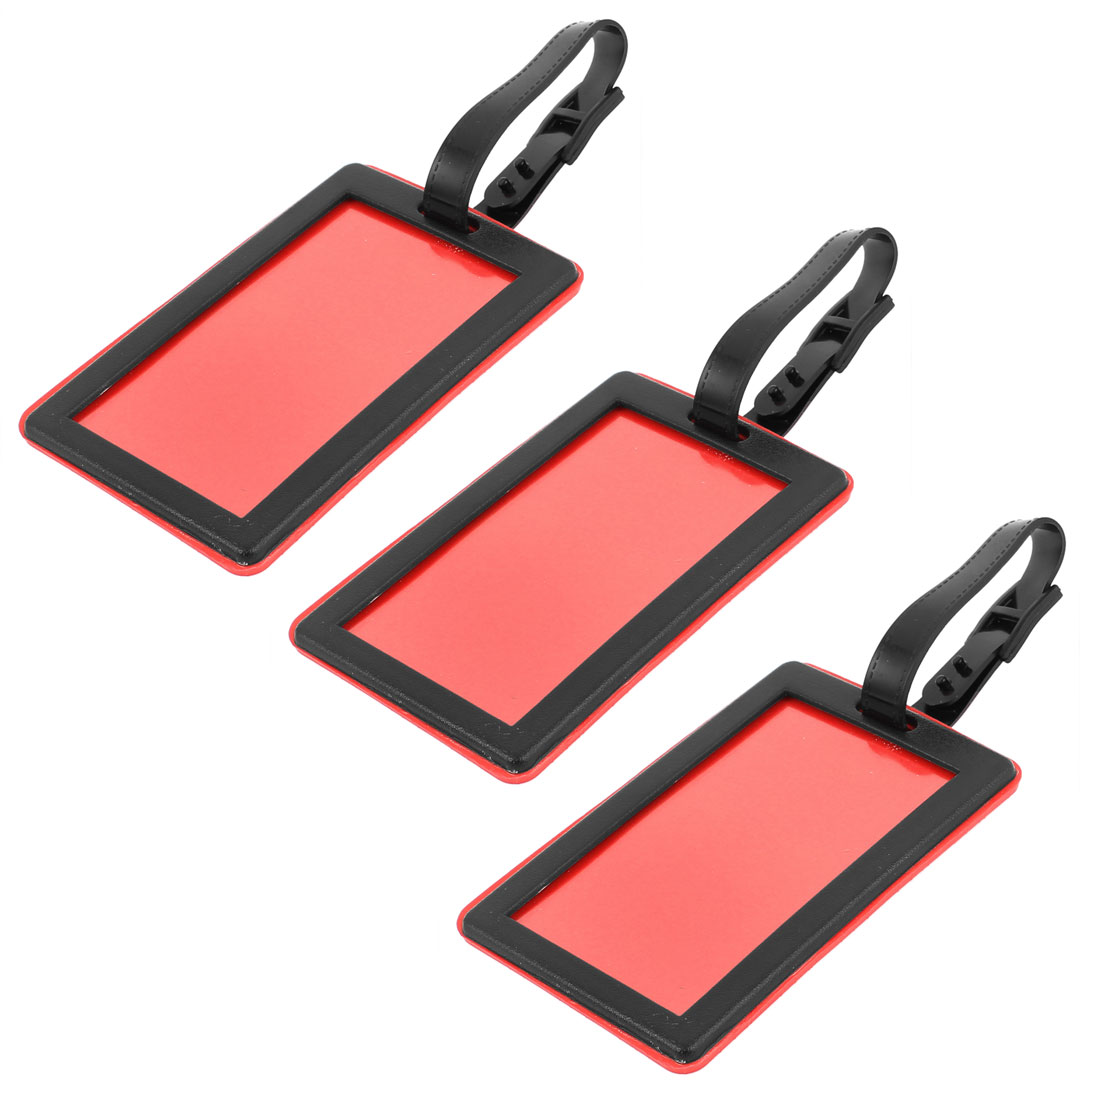 Padlock Print Rectangle Shaped Plastic Bag ID Name Label Luggage Tag Red Black 3pcs